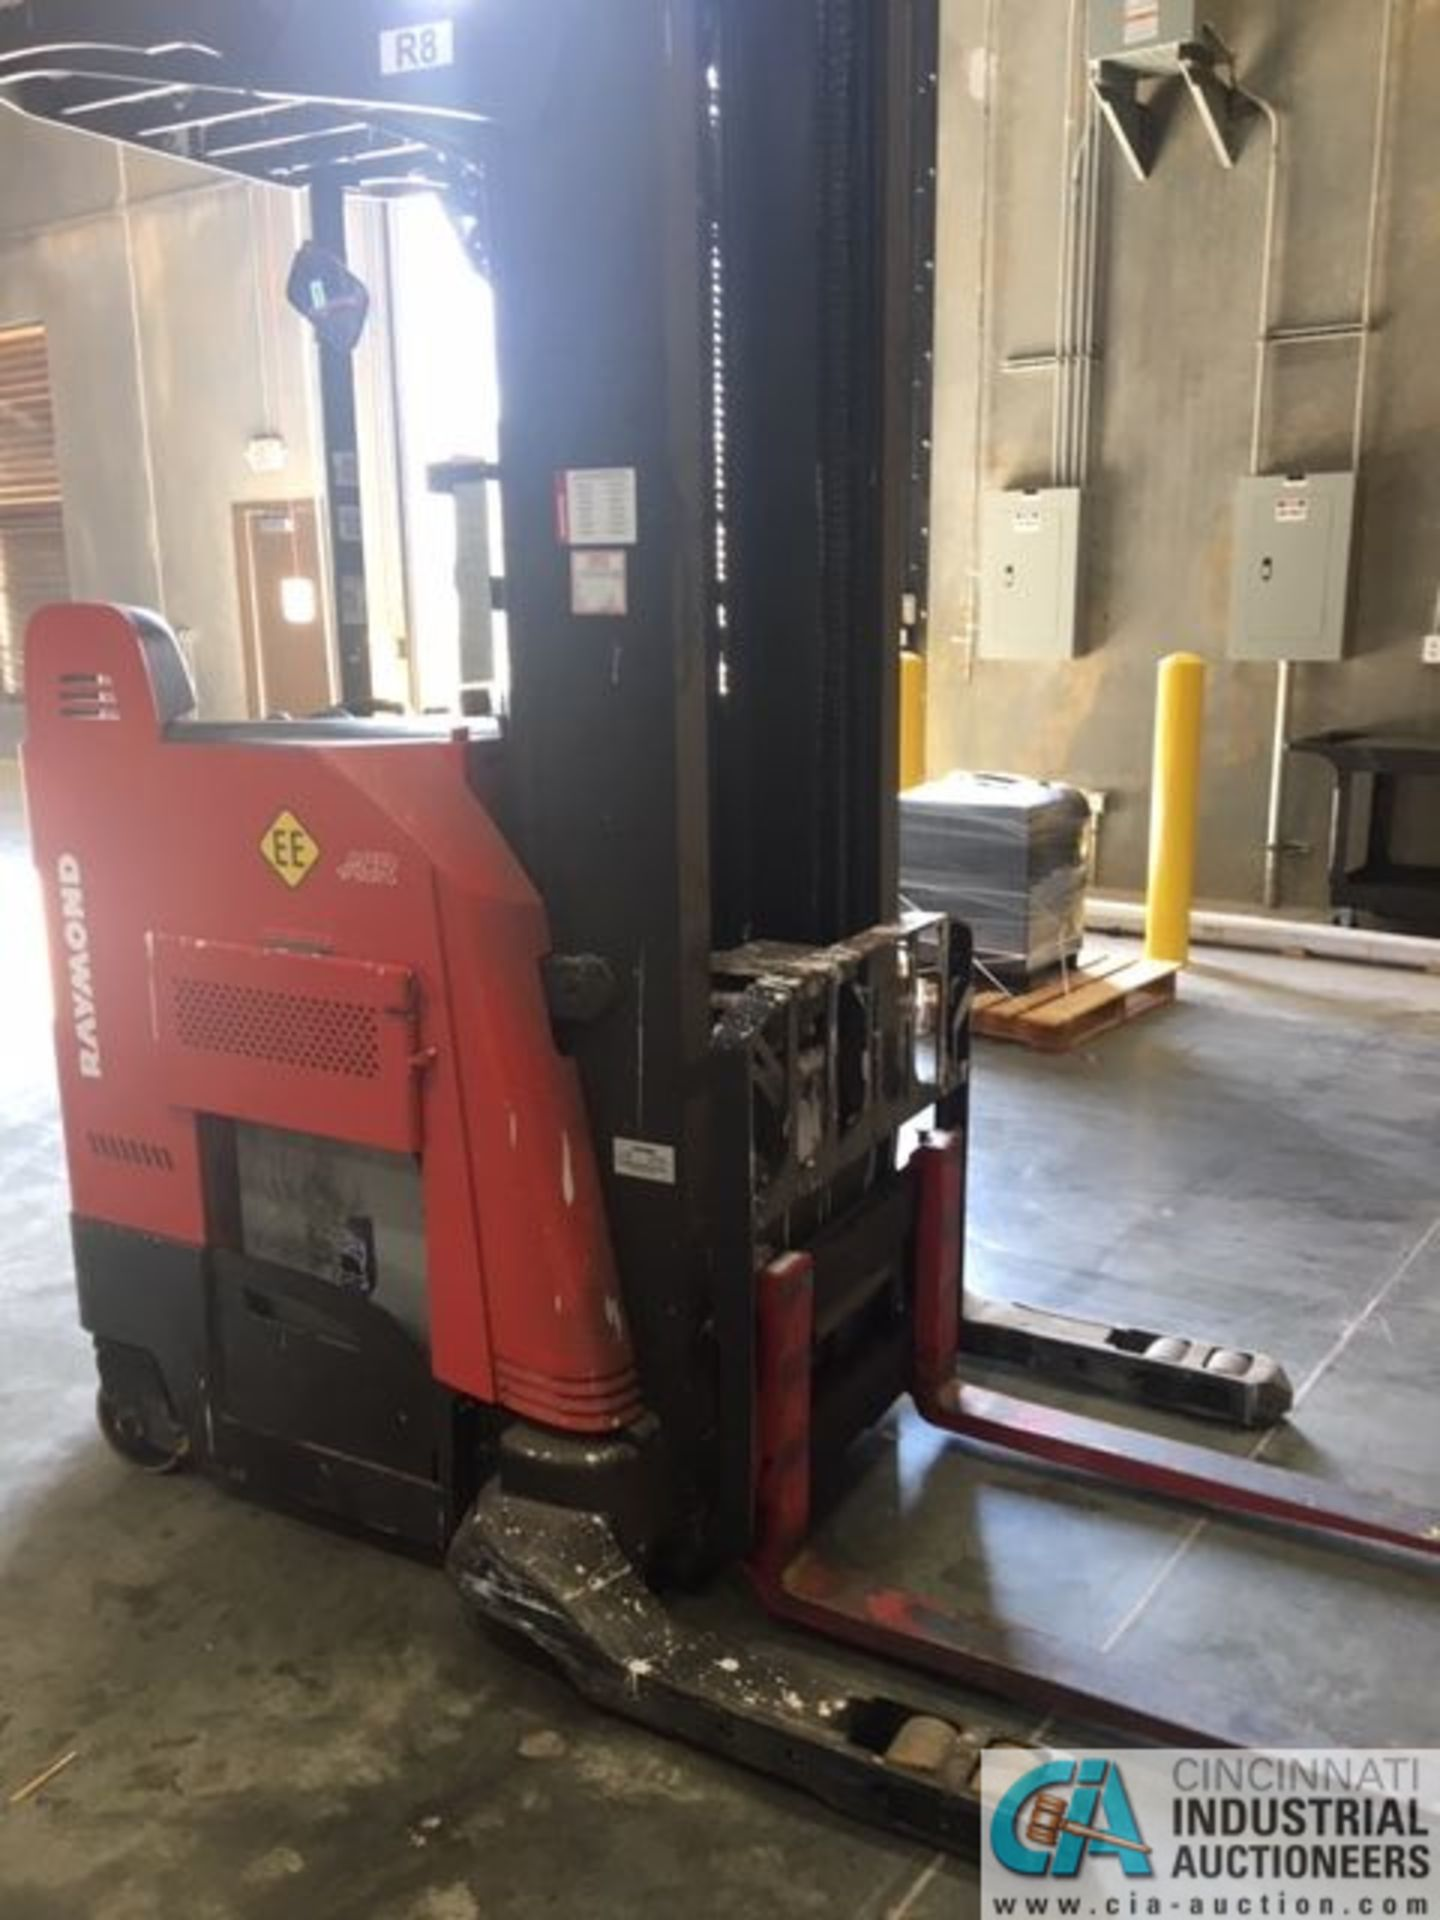 RAYMOND MODEL 750-R45TT ELECTRIC REACH TRUCK; S/N 750-15-BC47246, 36-VOLT BATTERY CHARGER, 36-VOLT - Image 4 of 9